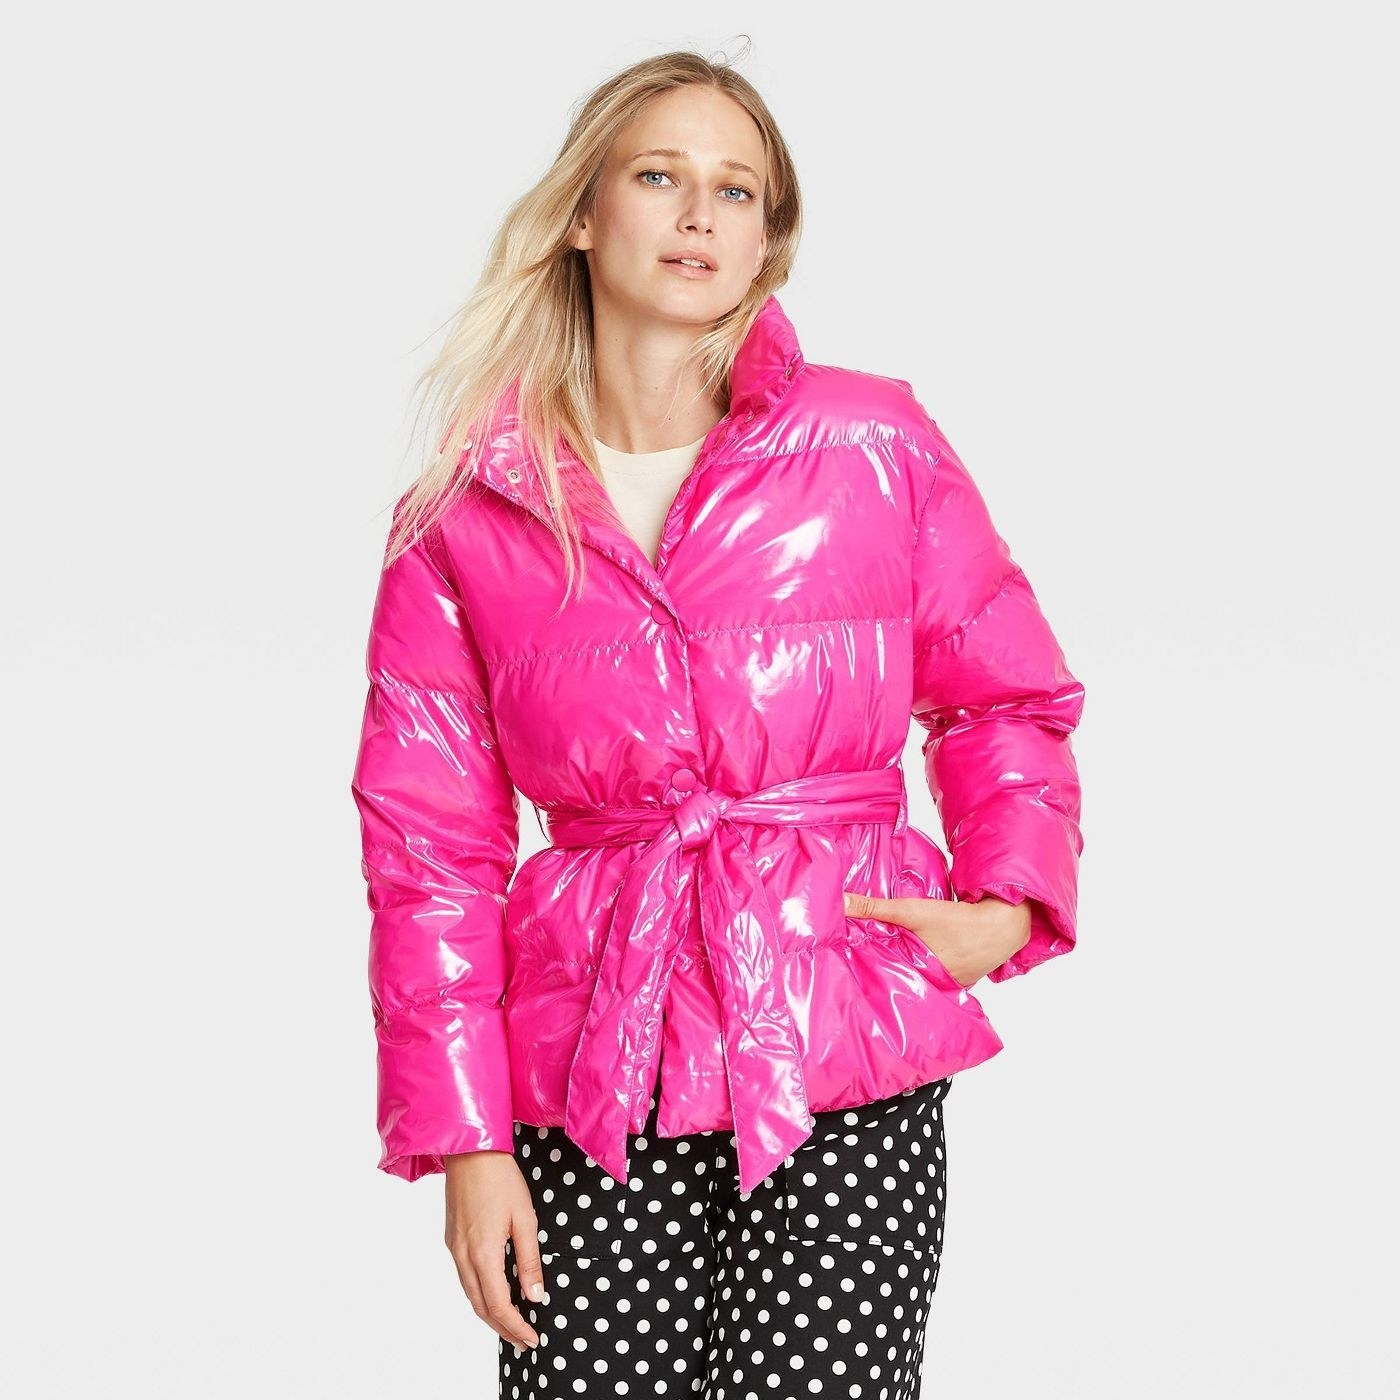 Model in pink tie waist puffer jacket